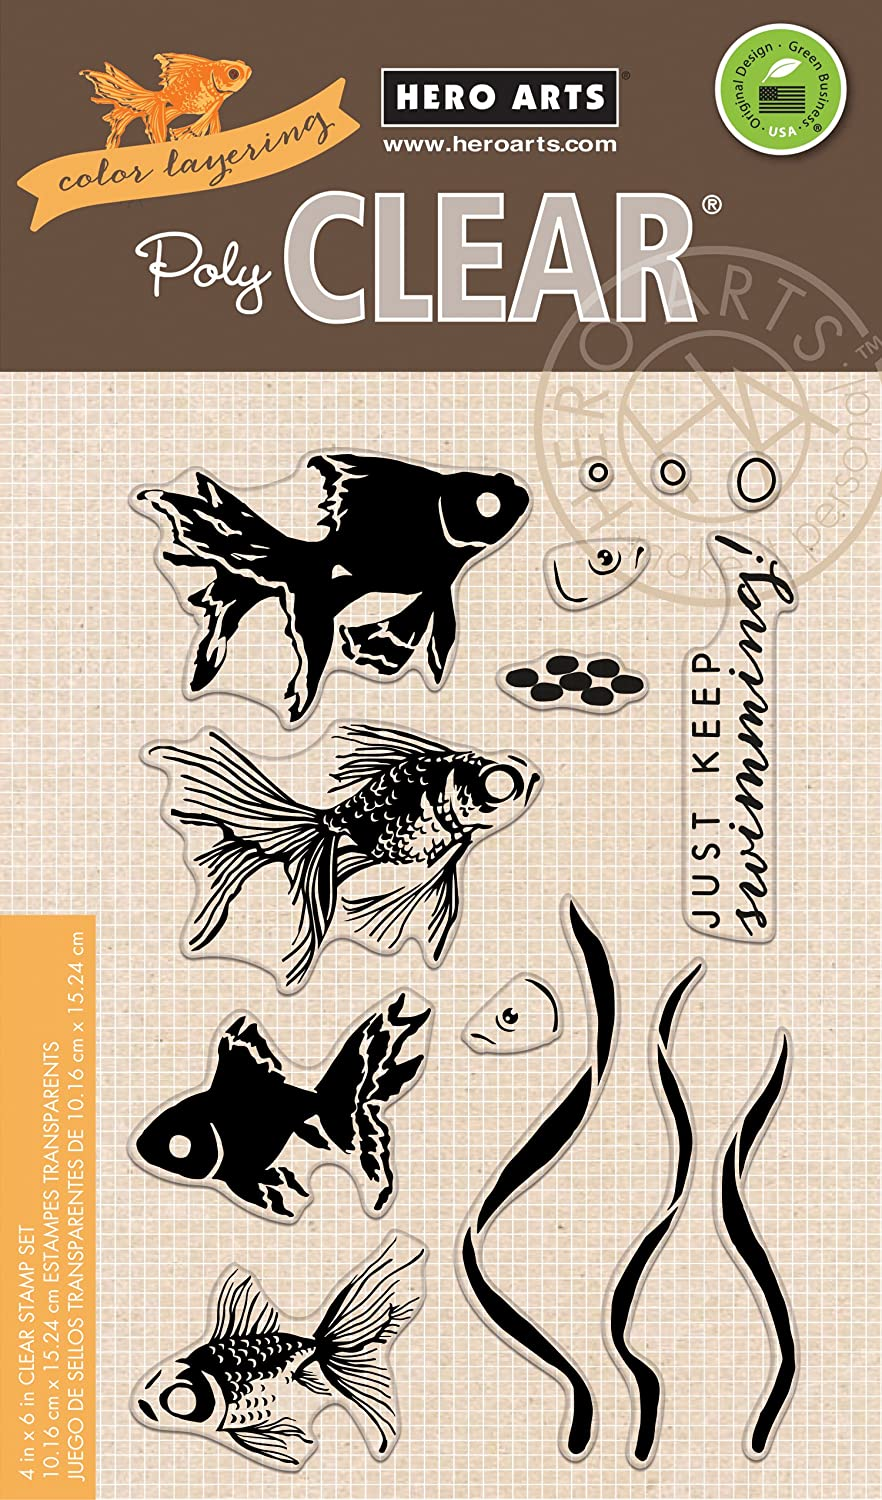 Hero Arts Color Layering Goldfish Clear Stamps Inc. us home HEROV CL945